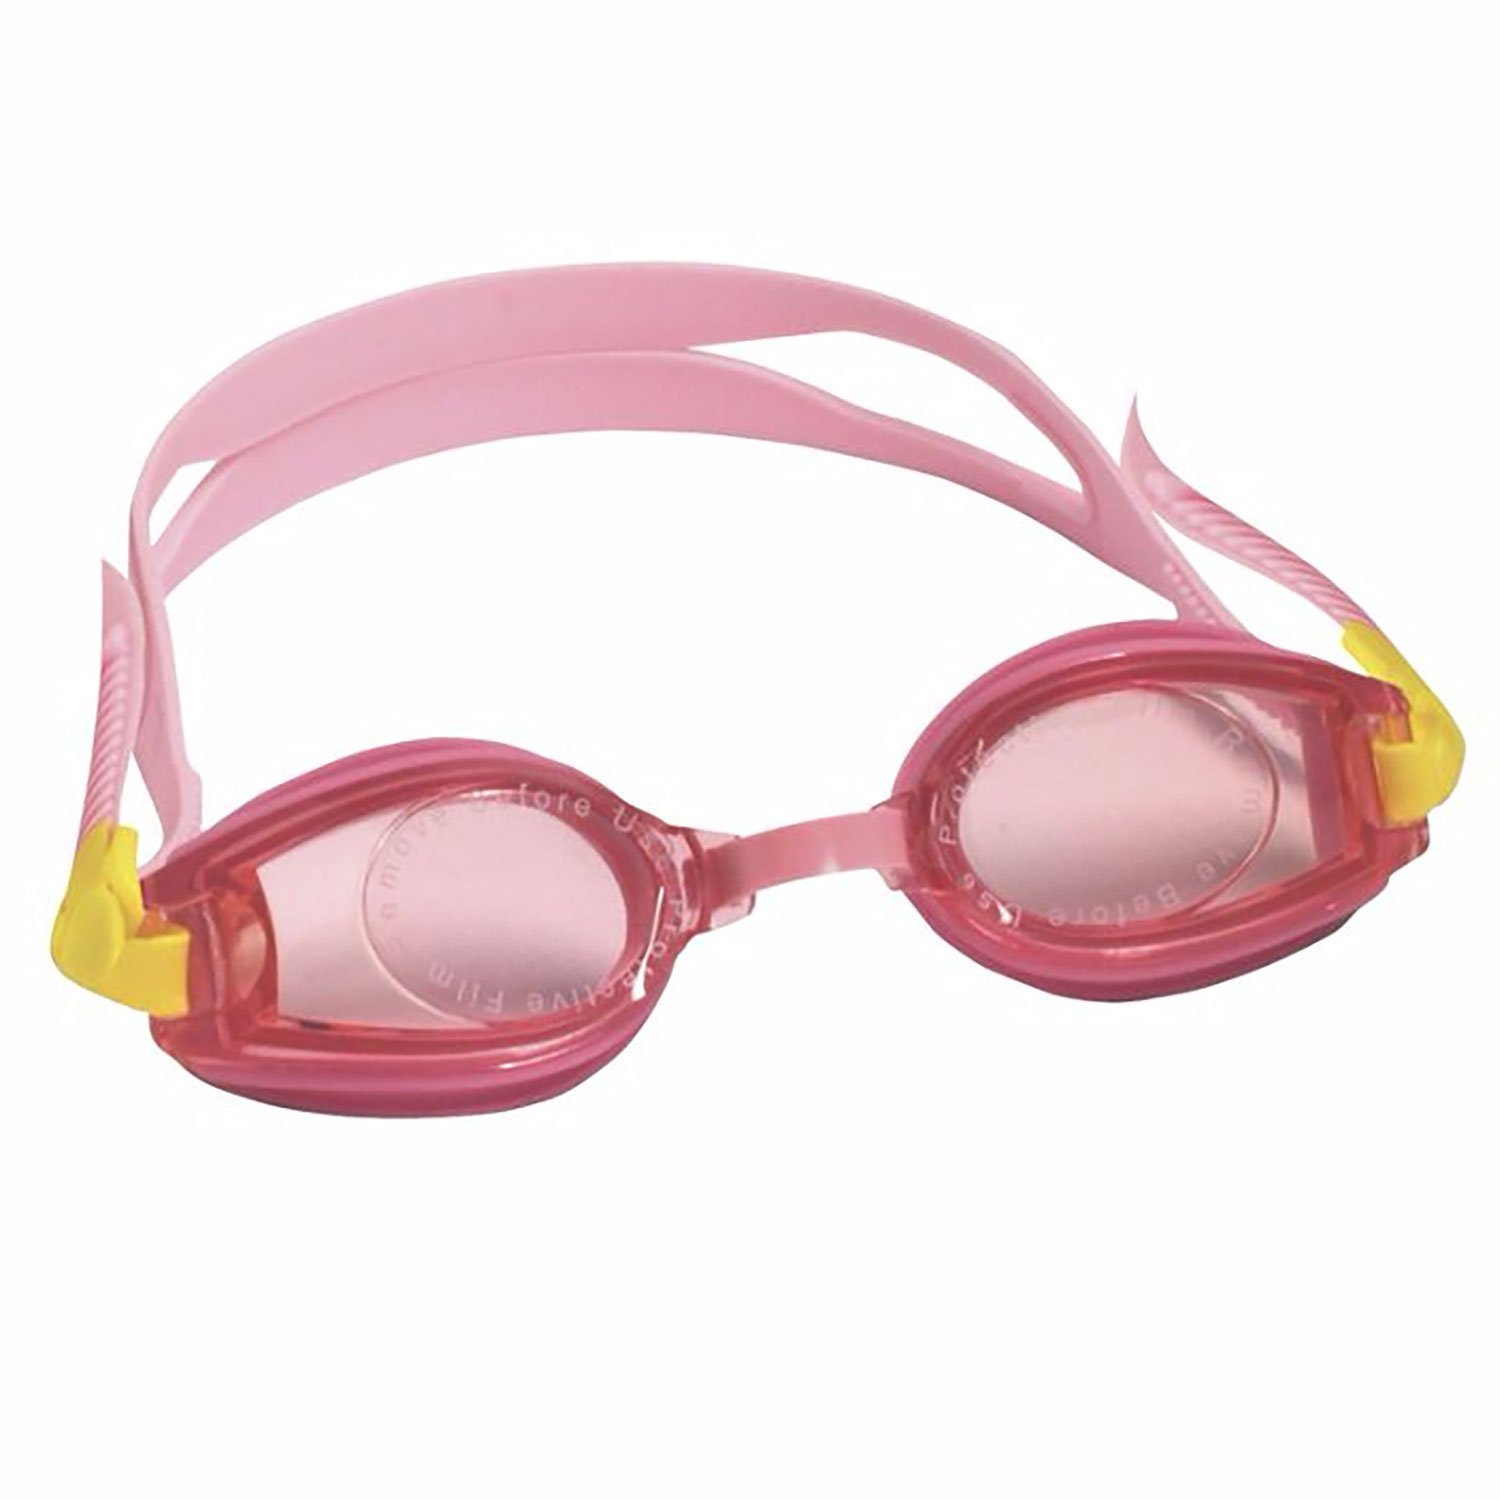 Kids Pink Swim Goggles Anti-Fog, UV Protection Toddler Girls Ages 2-5, Specifically designed for 2-5 year old girls,... by